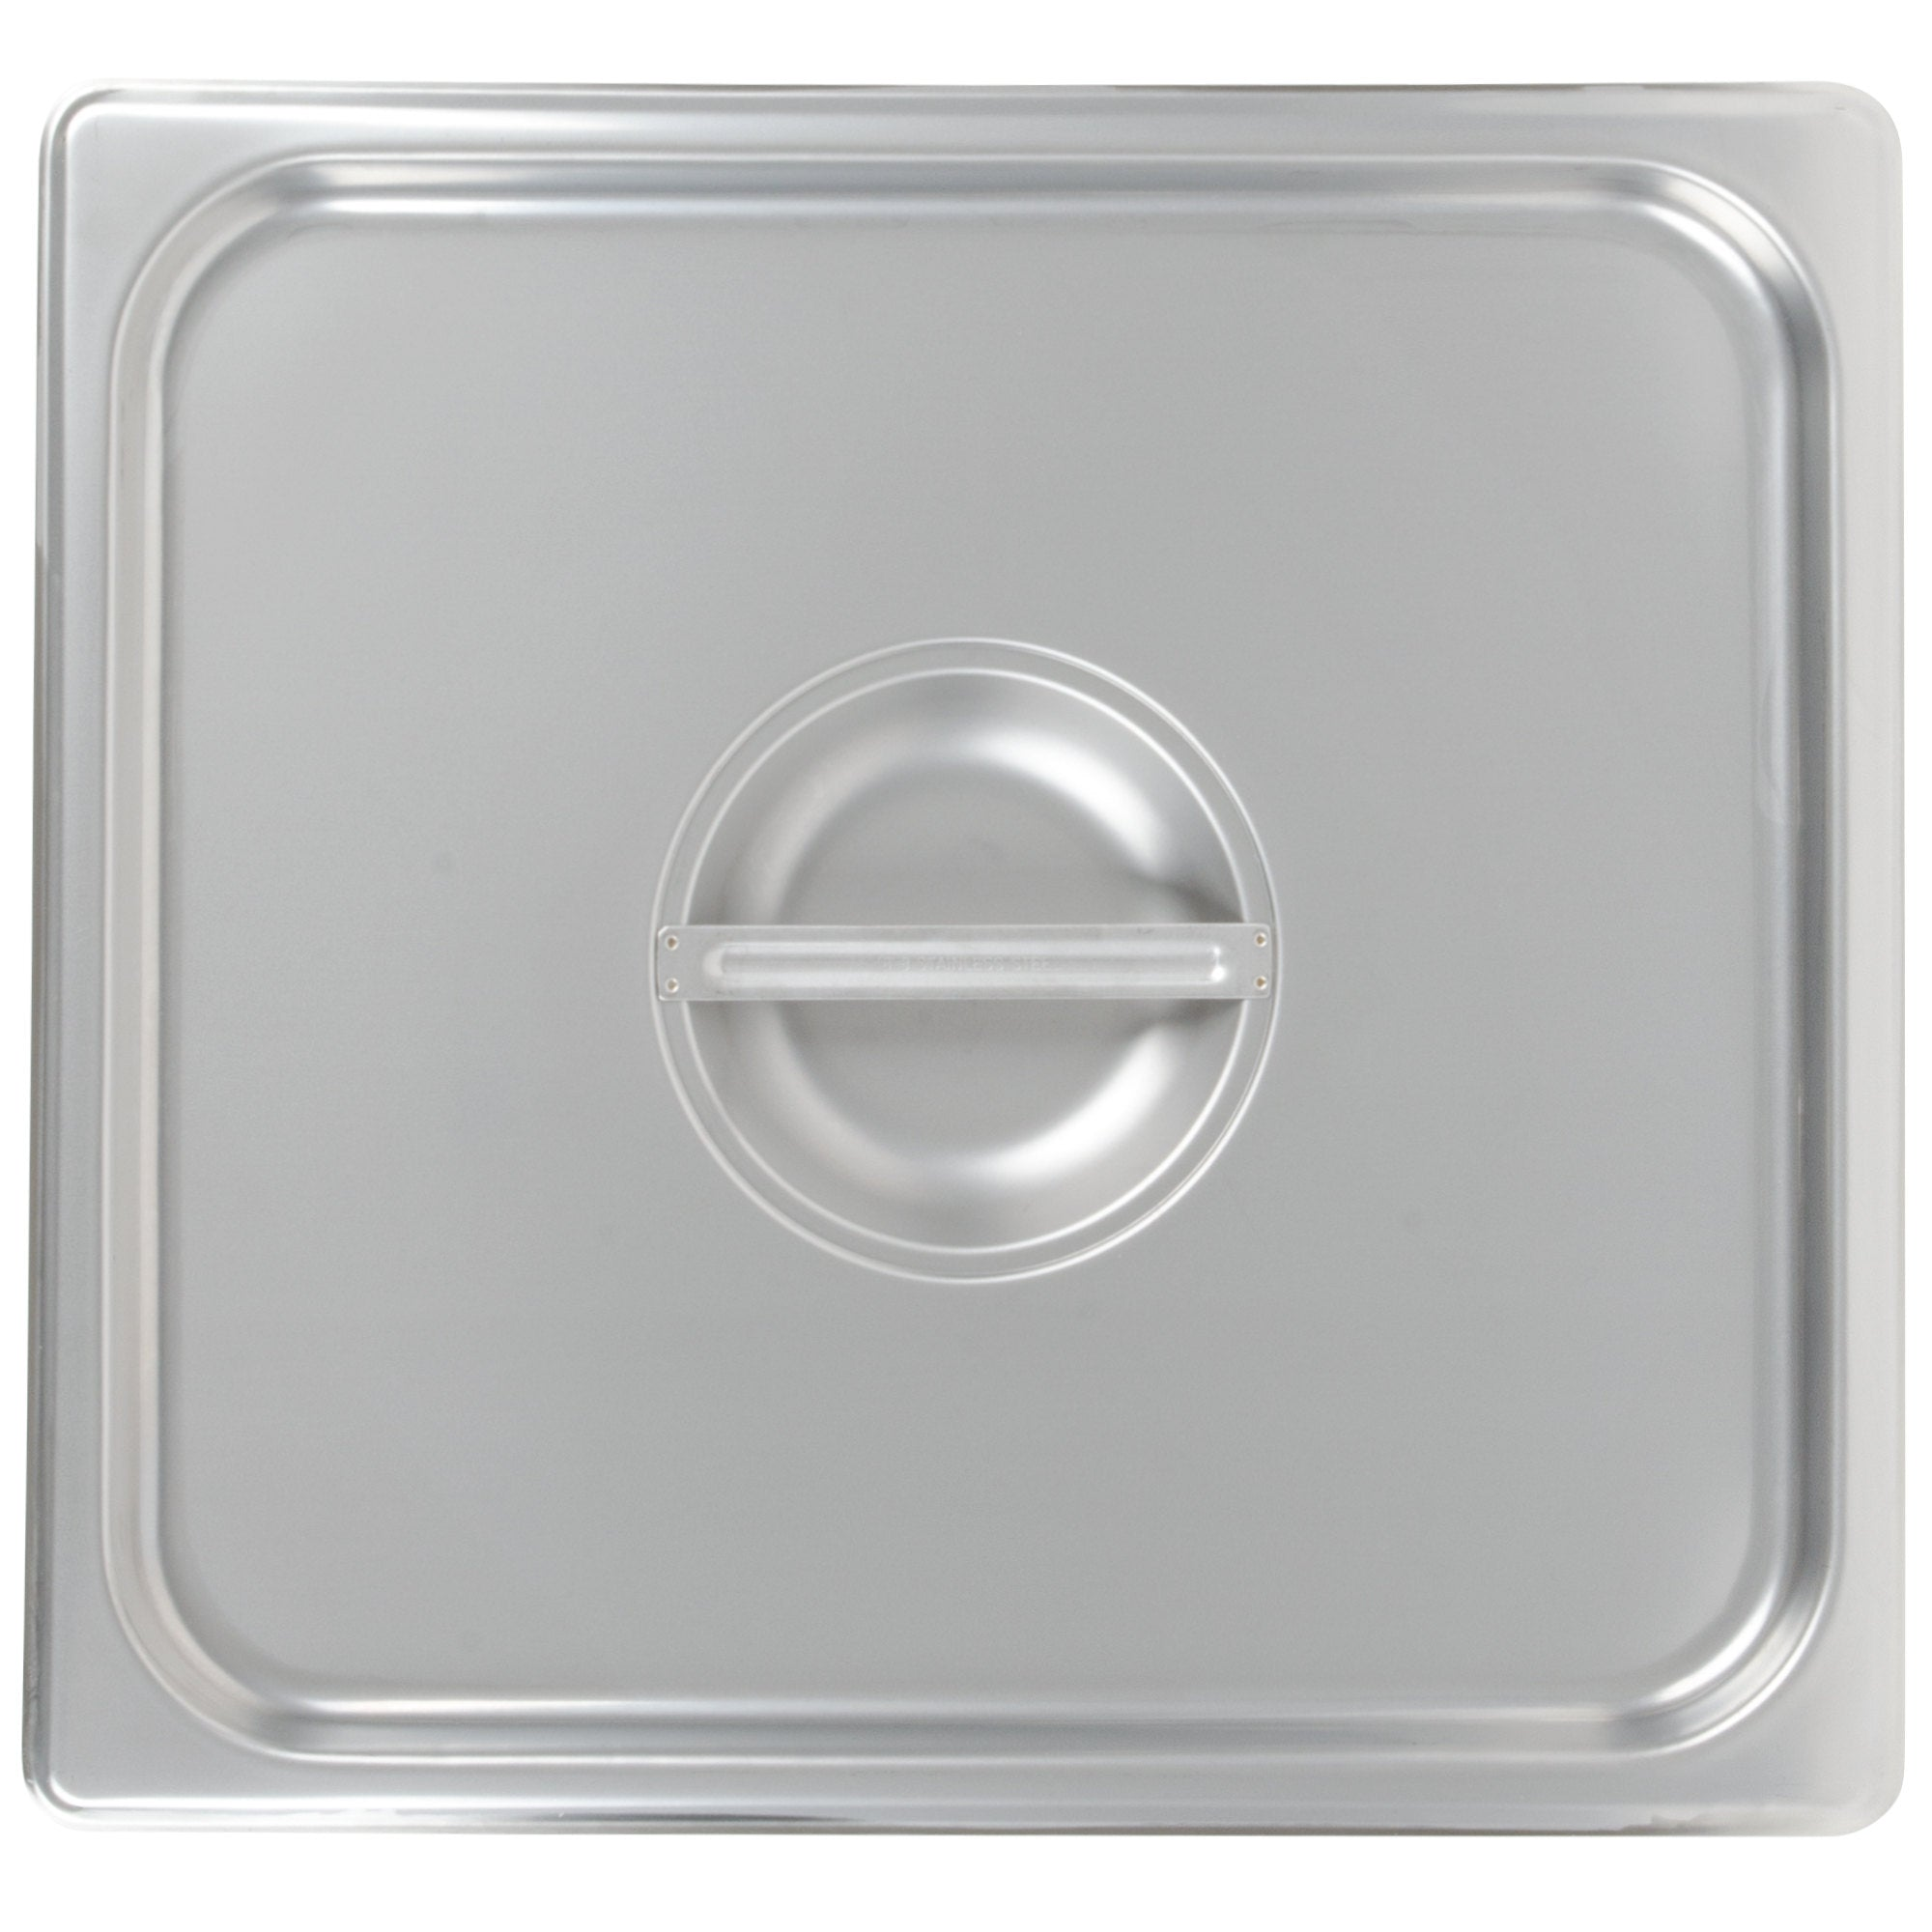 2/3 Size Steam Table Pan Cover